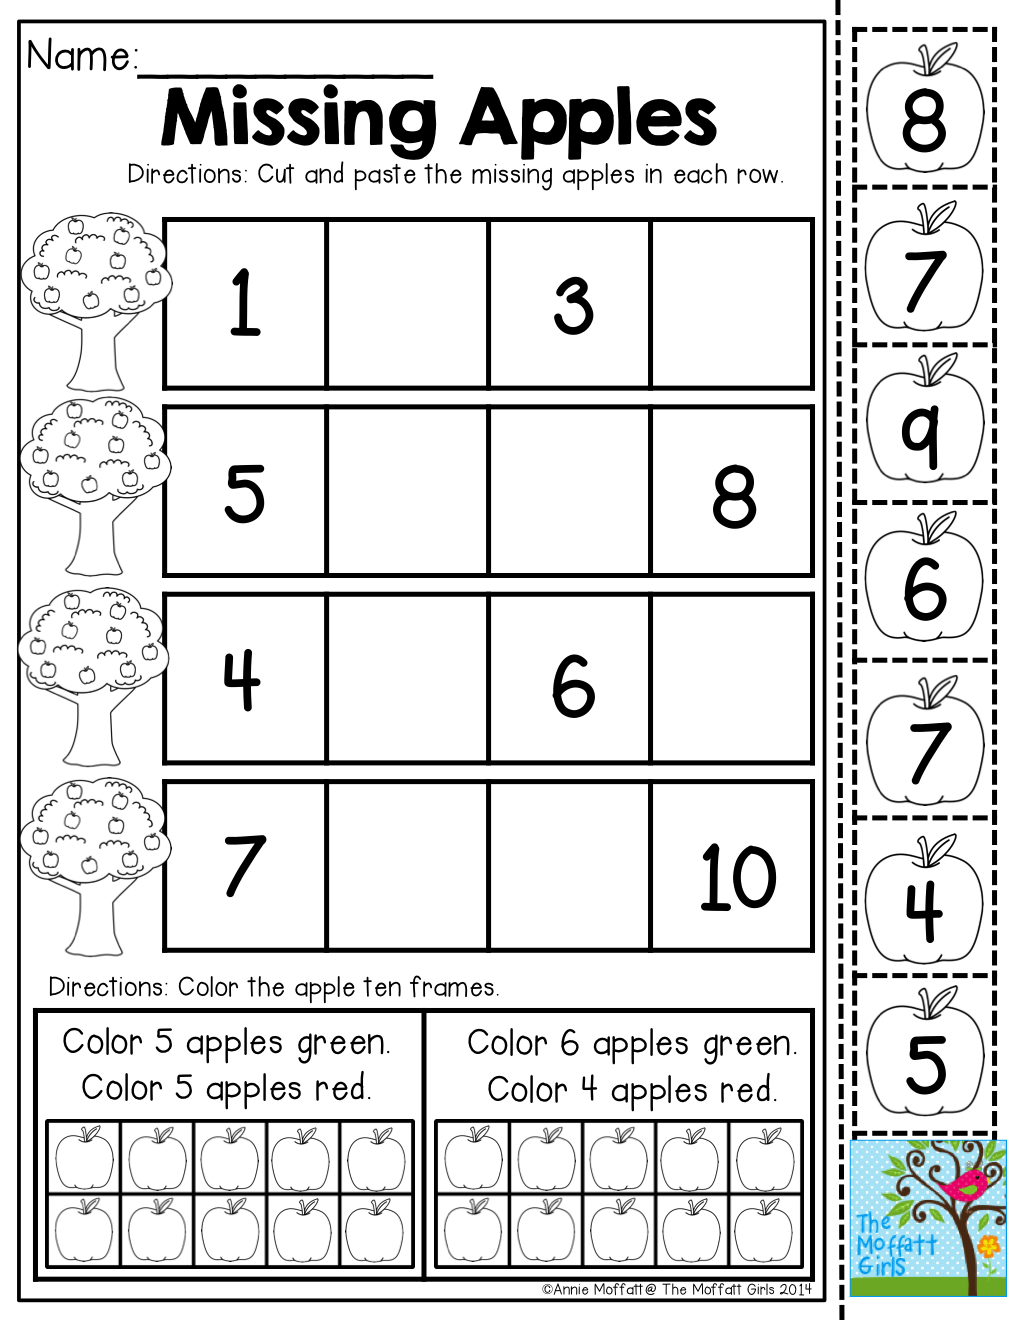 Missing Apples Cut And Paste The Apples To The Correct Spots Tons Of Back To School Printables